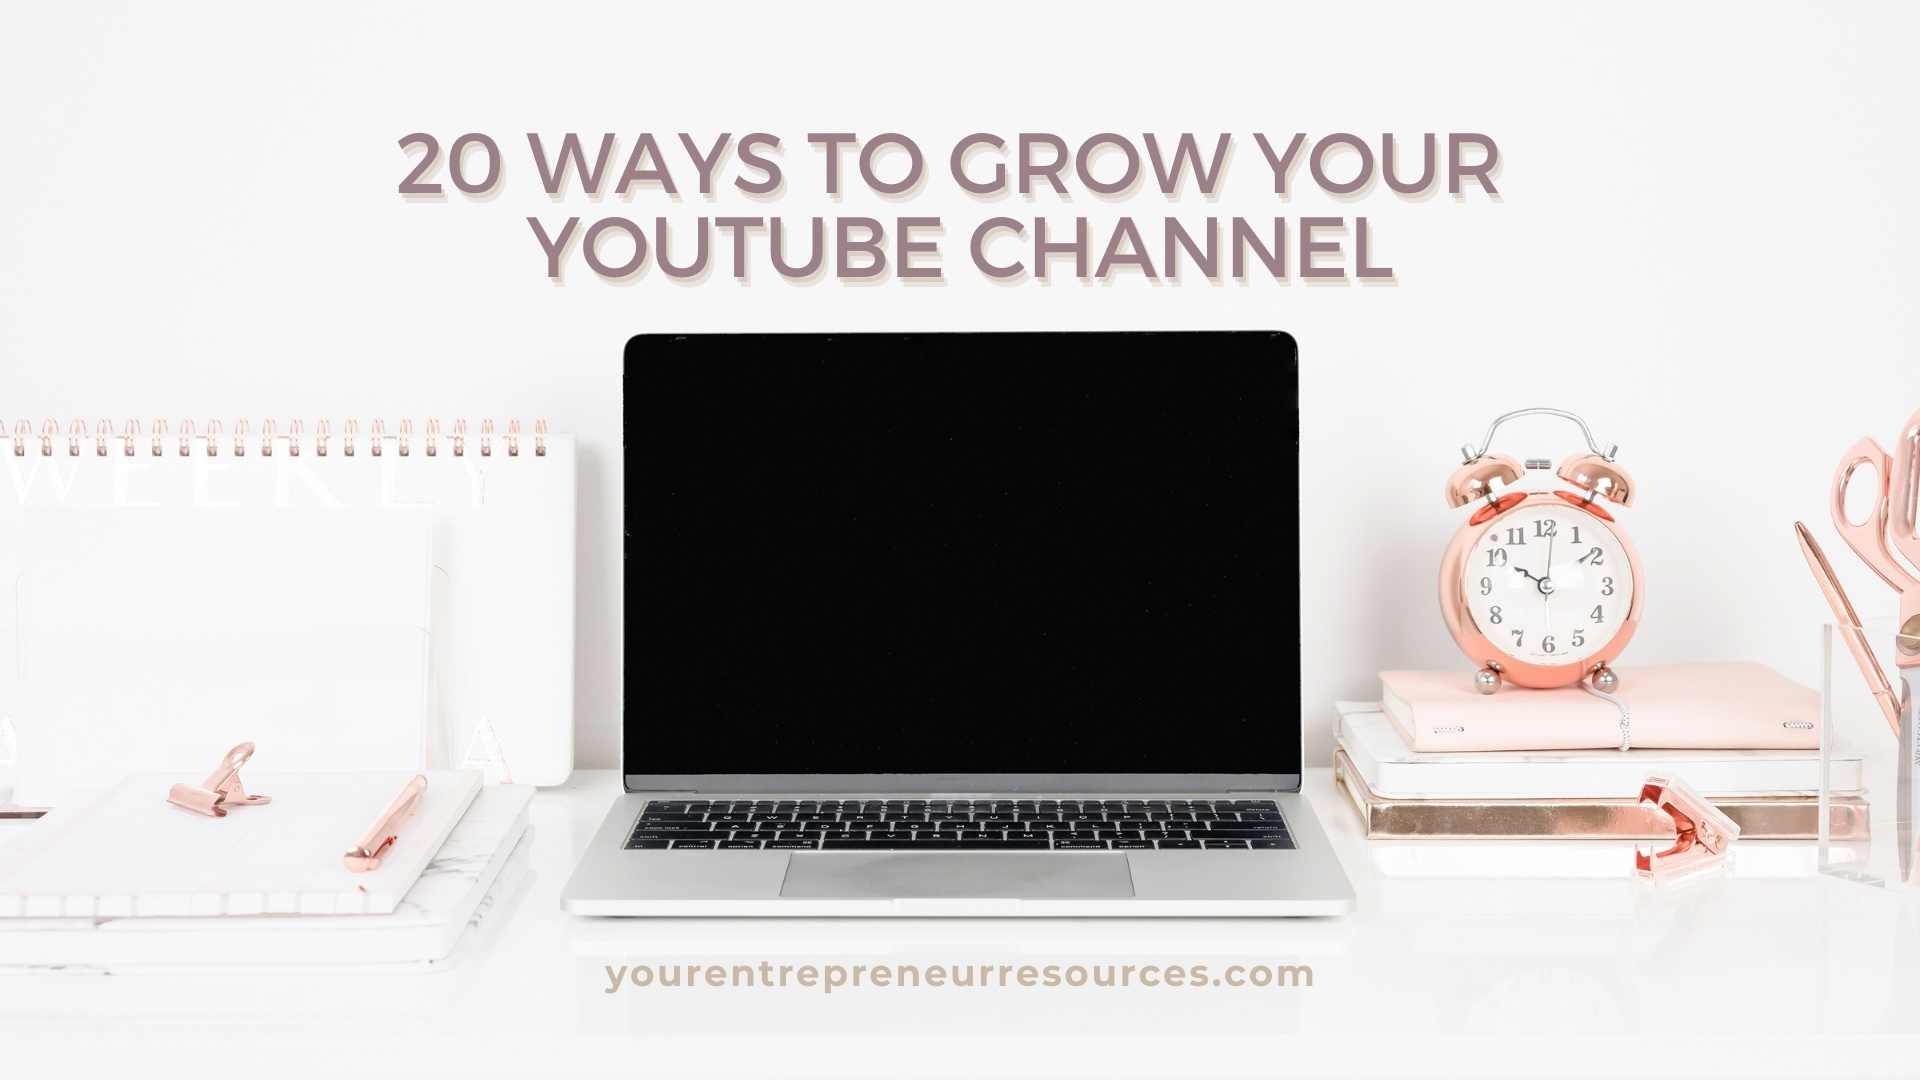 20-Ways-To-Grow-Your-YouTube-Channel-Get-More-People-Watching-and-Recommending-Your-Videos